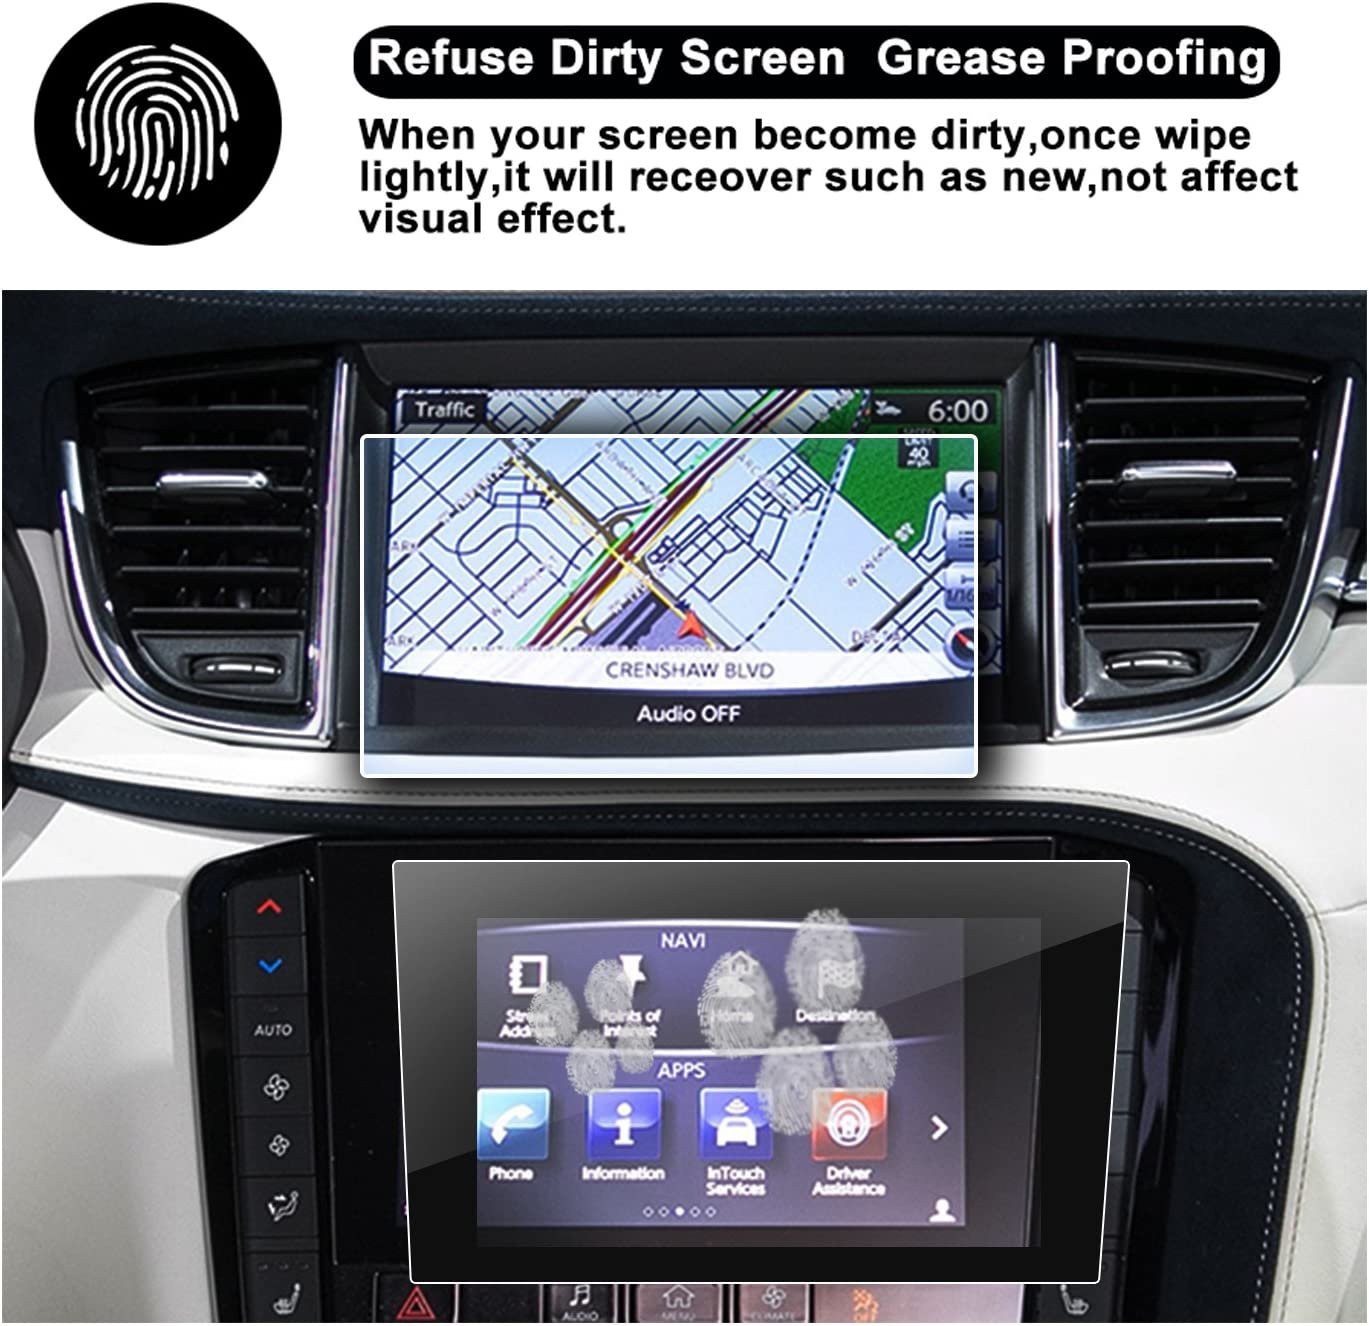 R RUIYA HD Clear TEMPERED GLASS Protective Film Against Scratch High Clarity 2019 2020 QX50 2016 2017 2018 Q60 Q50 Interior Center Stack Touchscreen Car Display Navigation Screen Protector